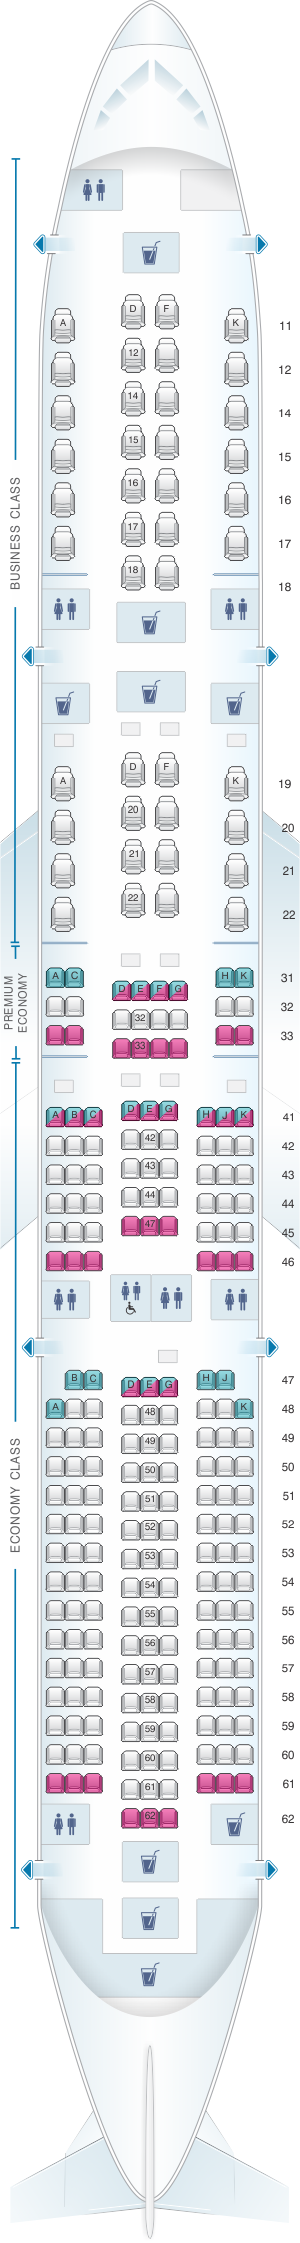 Seat map for Singapore Airlines Airbus A350 900